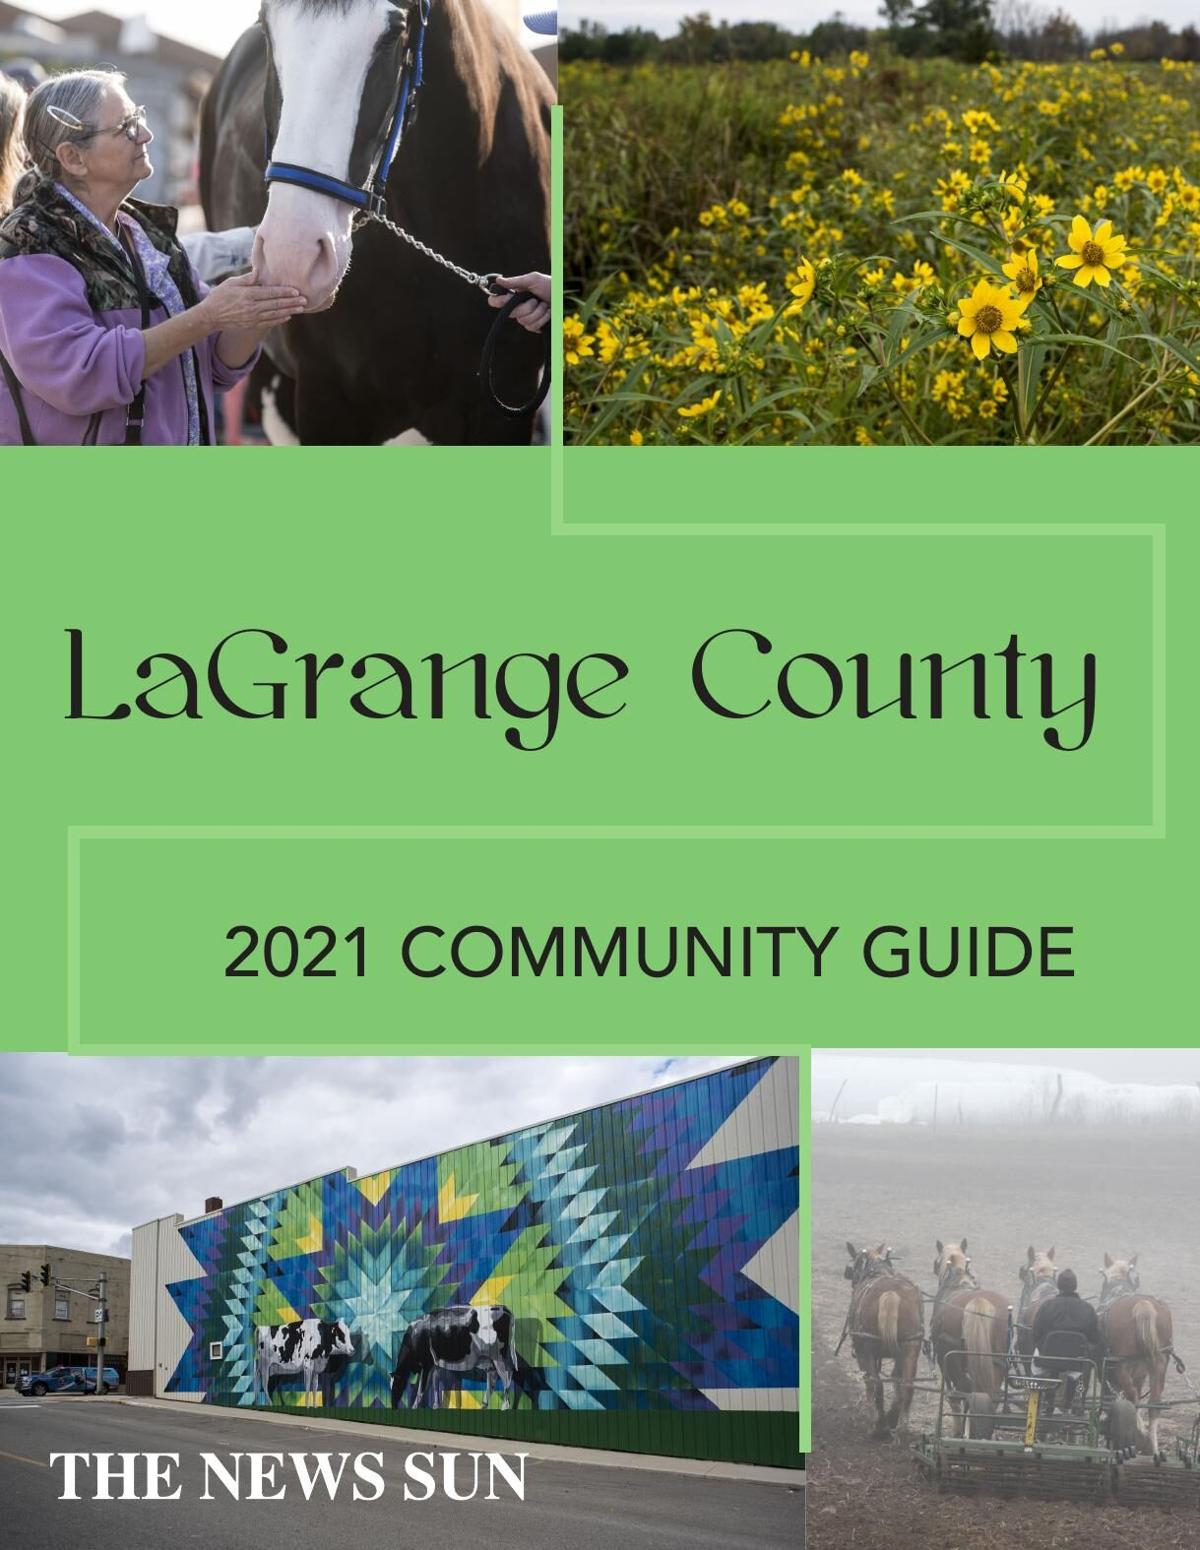 LaGrange Community Guide 2021